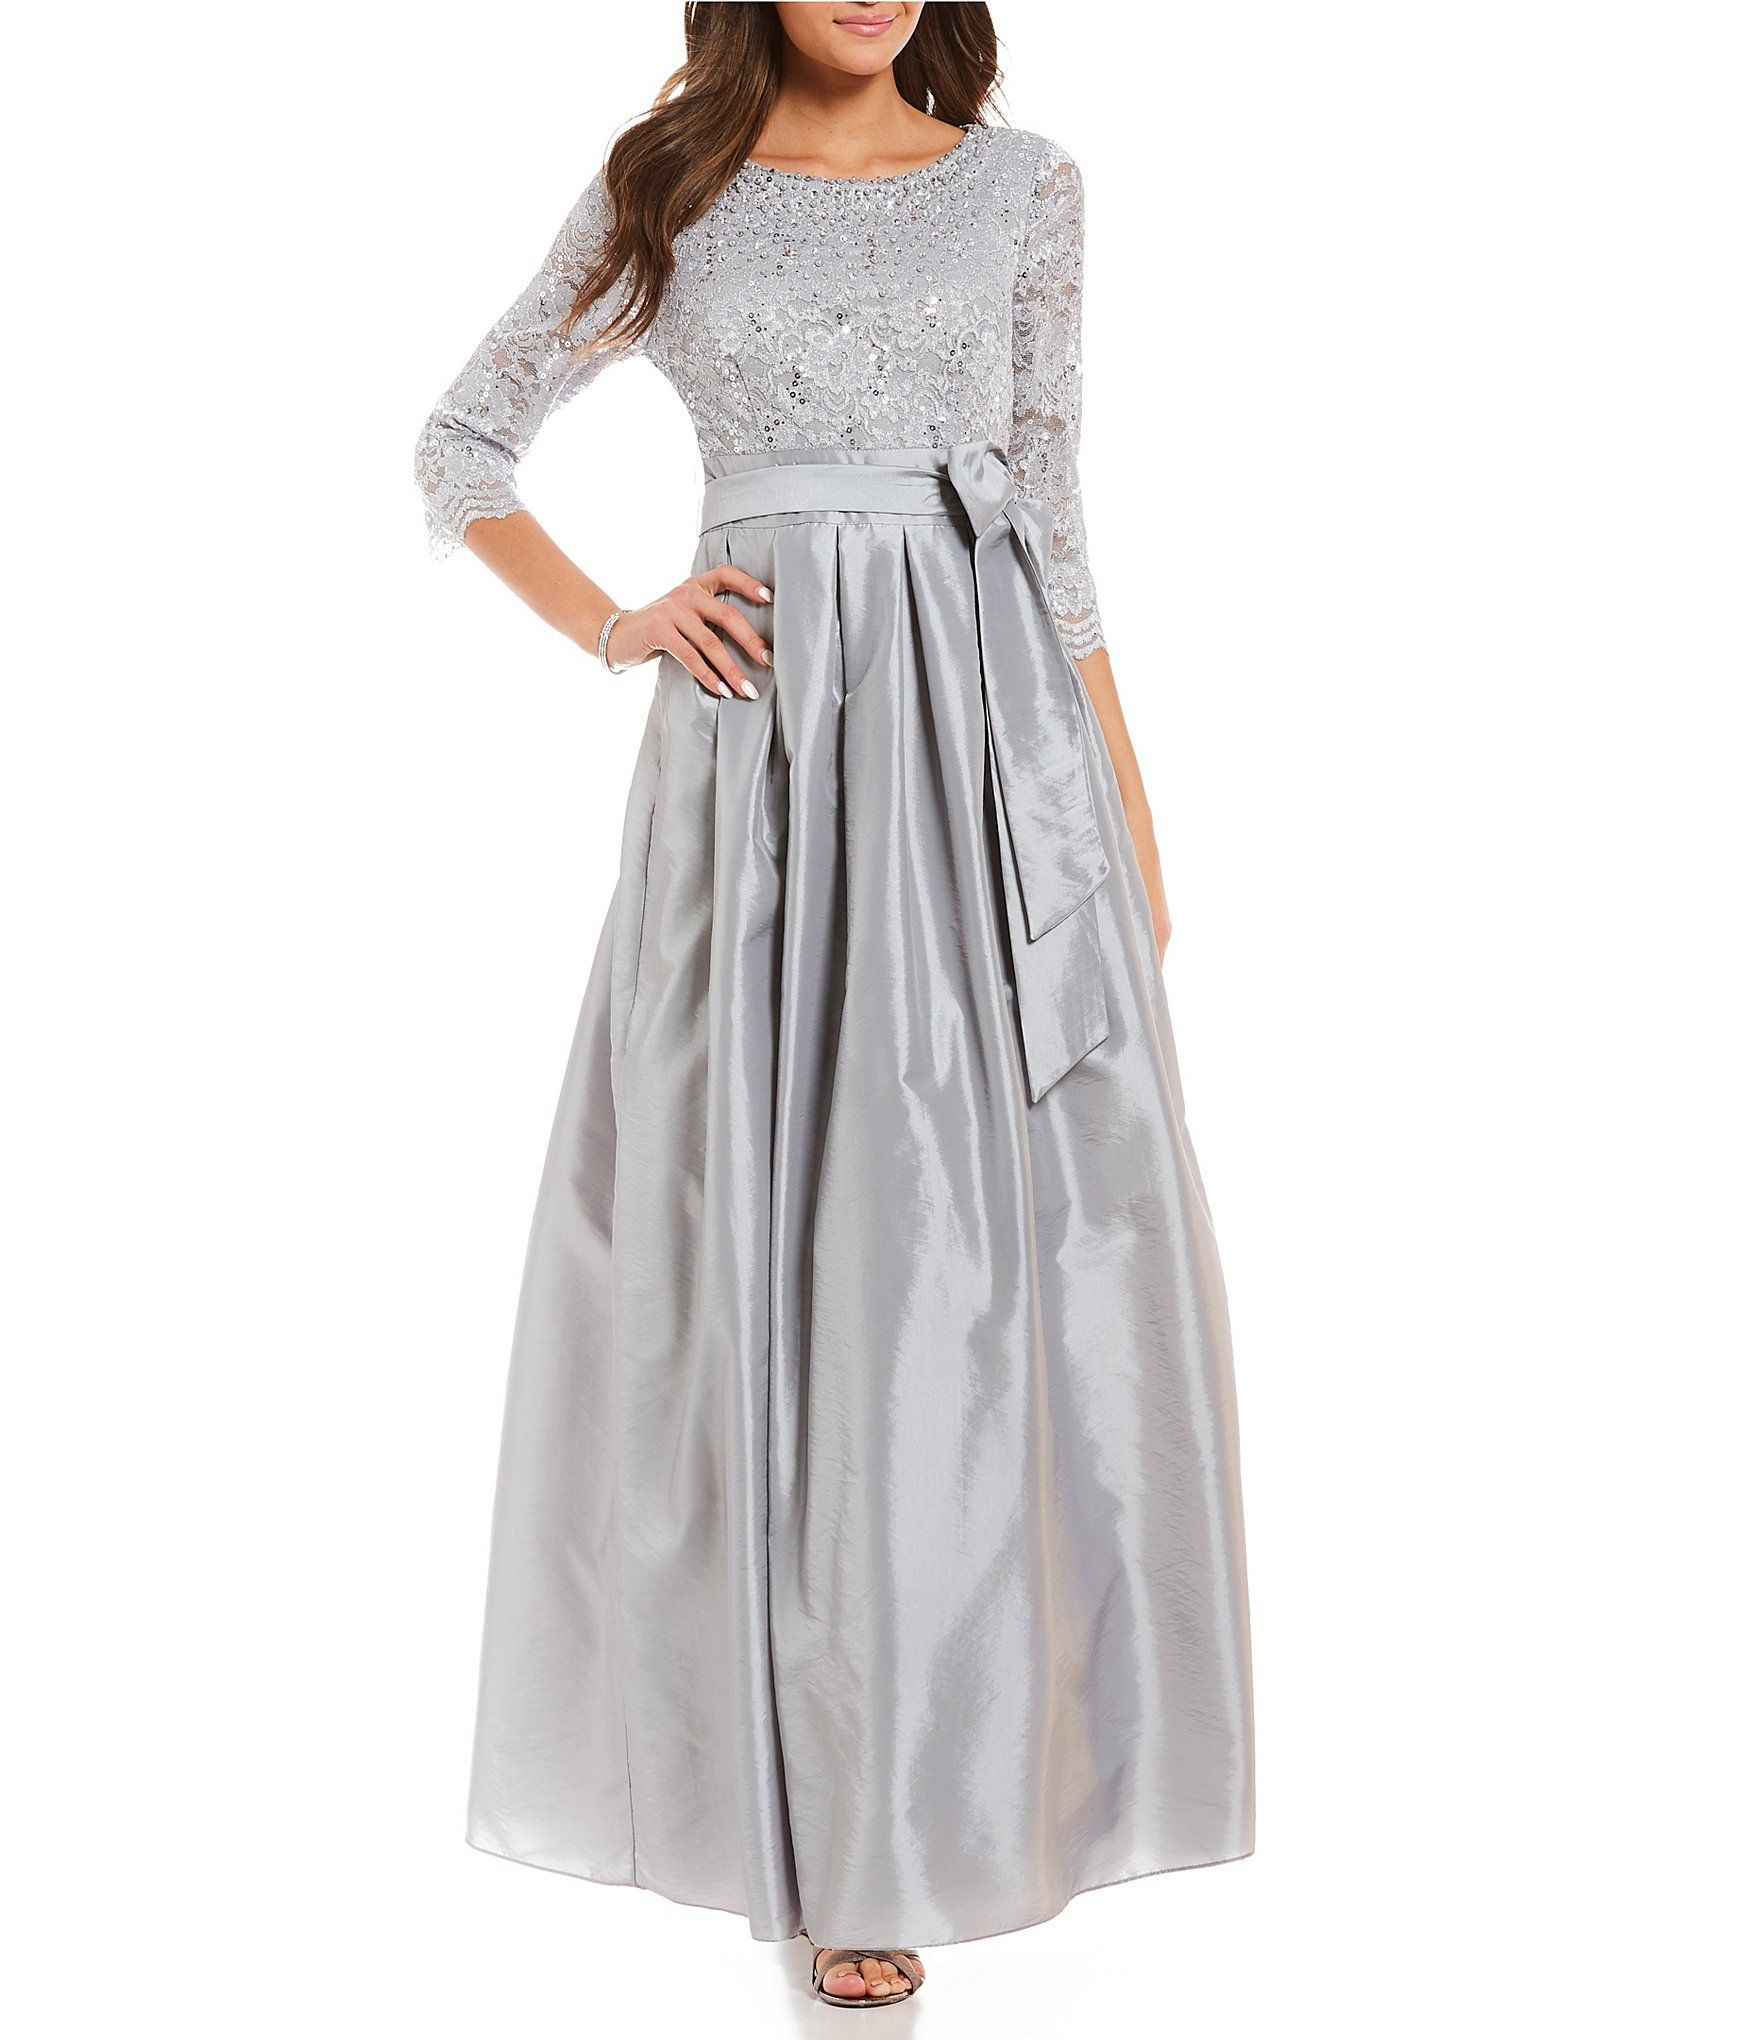 7d604f6a8191 Shop for Jessica Howard Pleated Skirt Ball Gown at Dillards.com. Visit  Dillards.com to find clothing